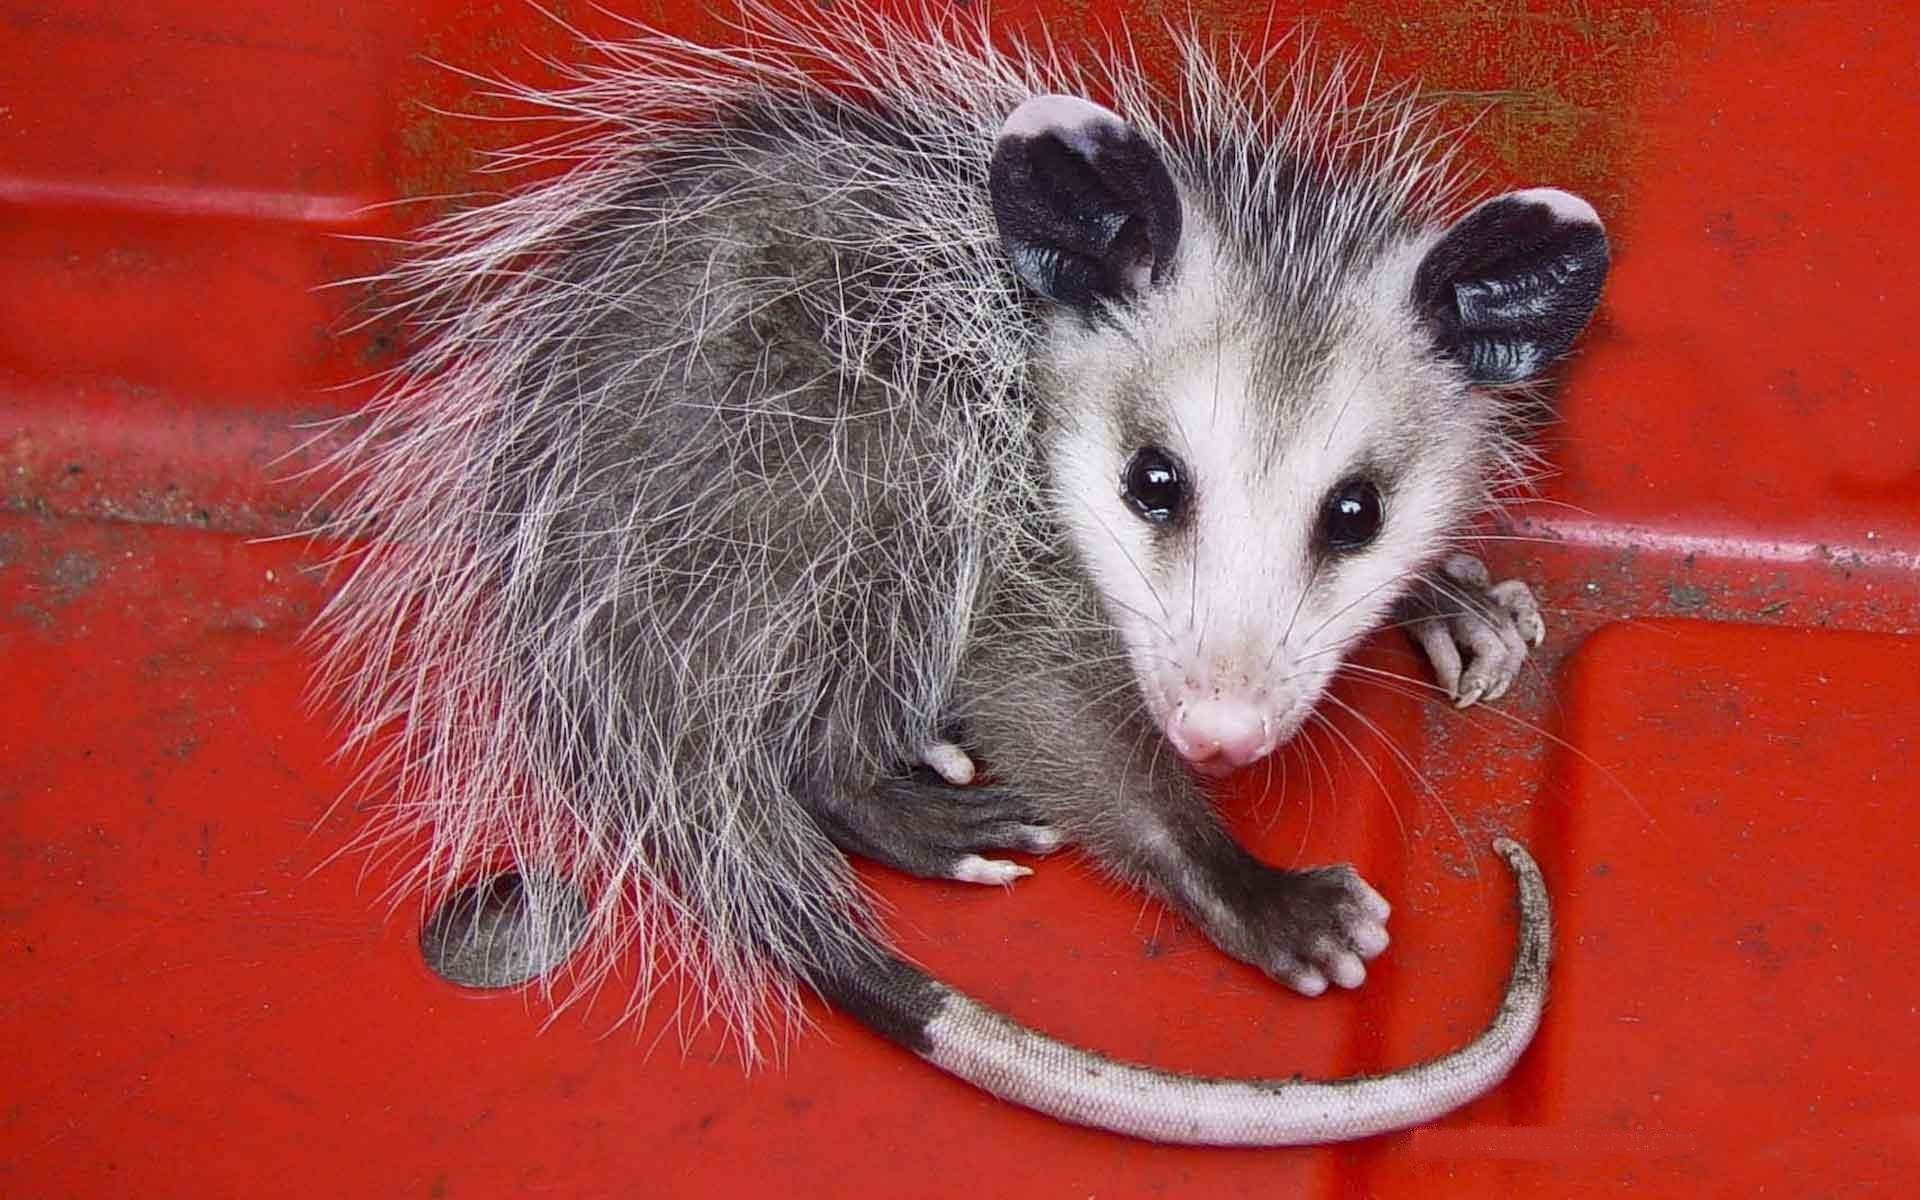 Animals opossums